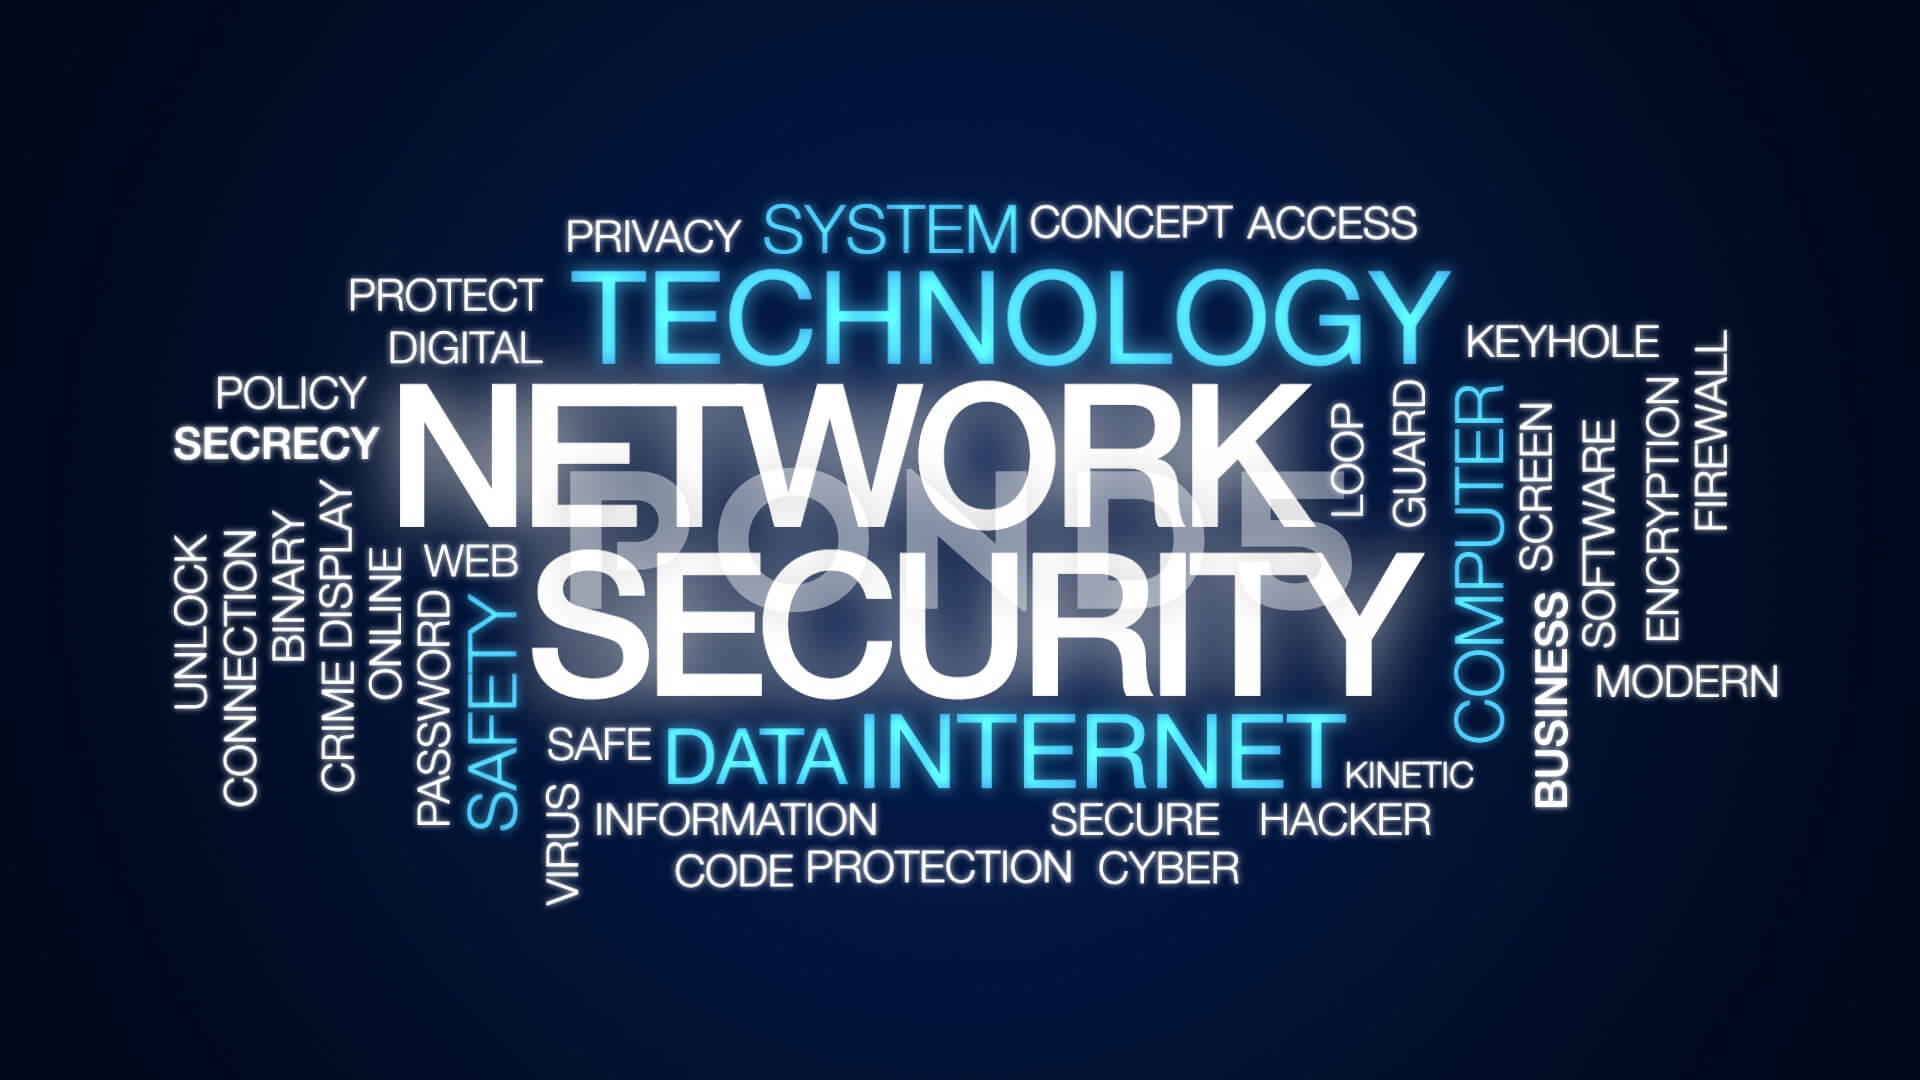 What is Network Security? Definition, Methods, Jobs & Salaries